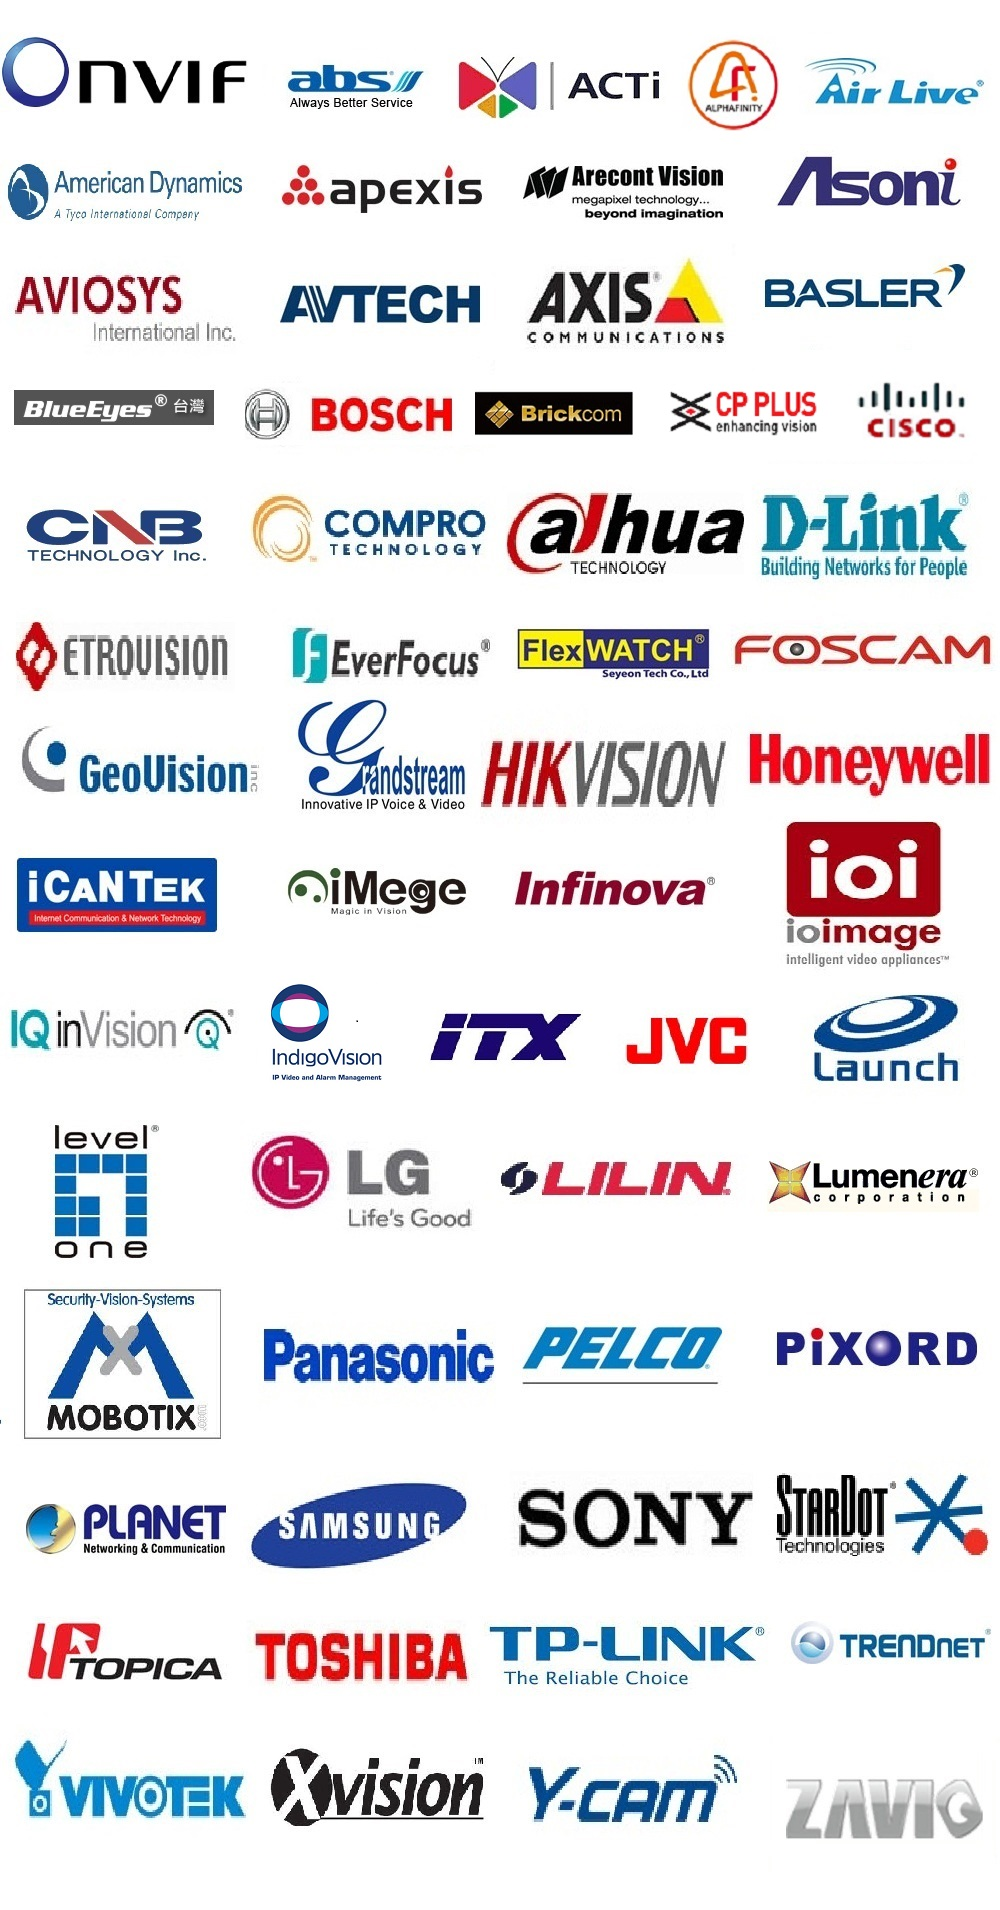 Video Analytic Software